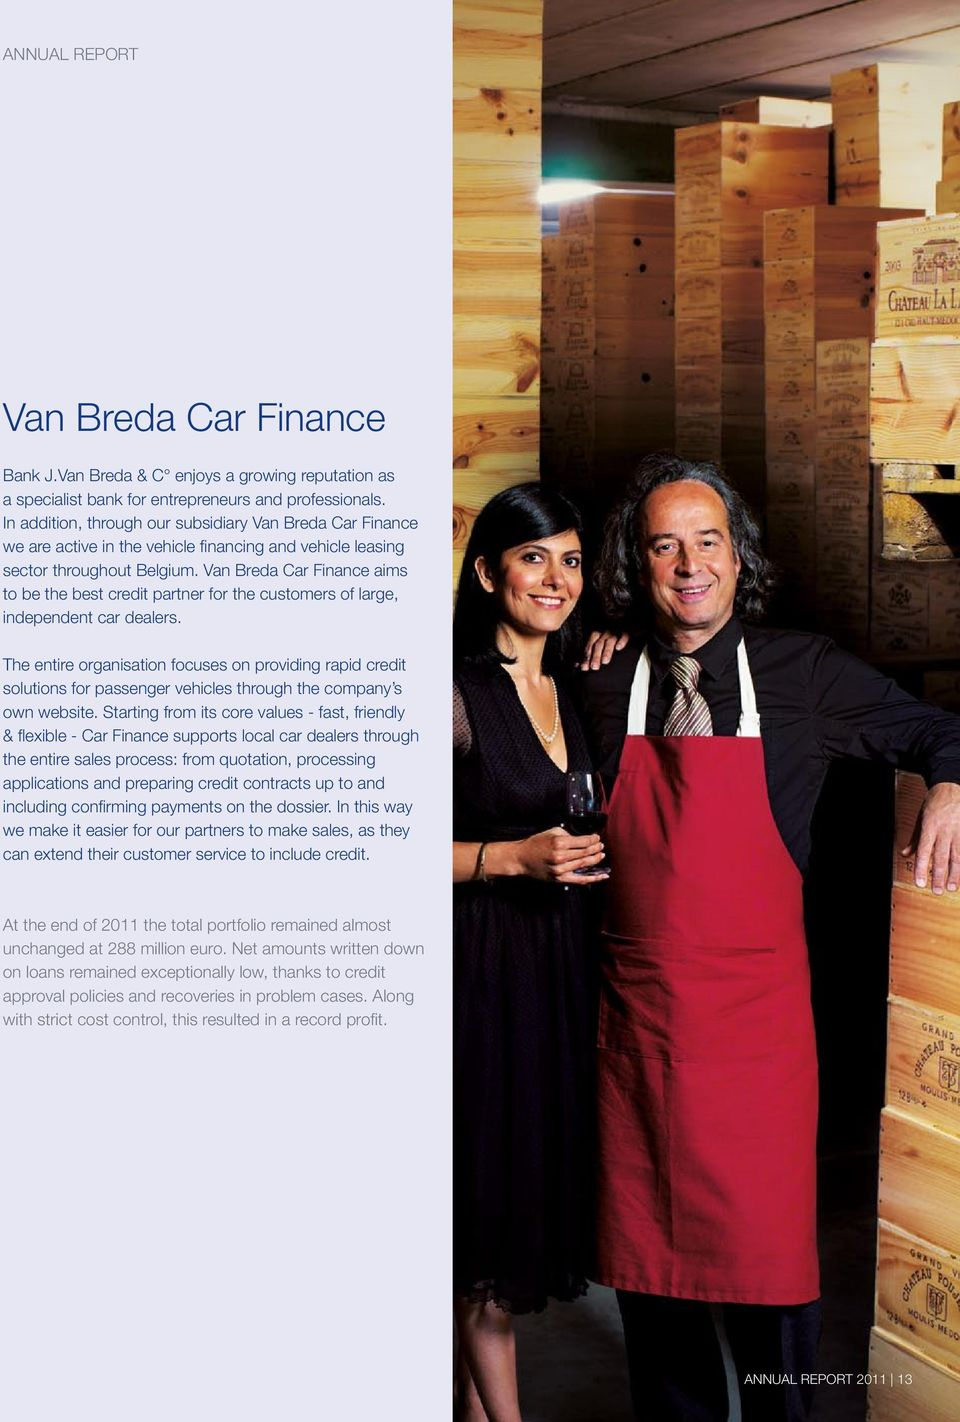 Van Breda Car Finance aims to be the best credit partner for the customers of large, independent car dealers.